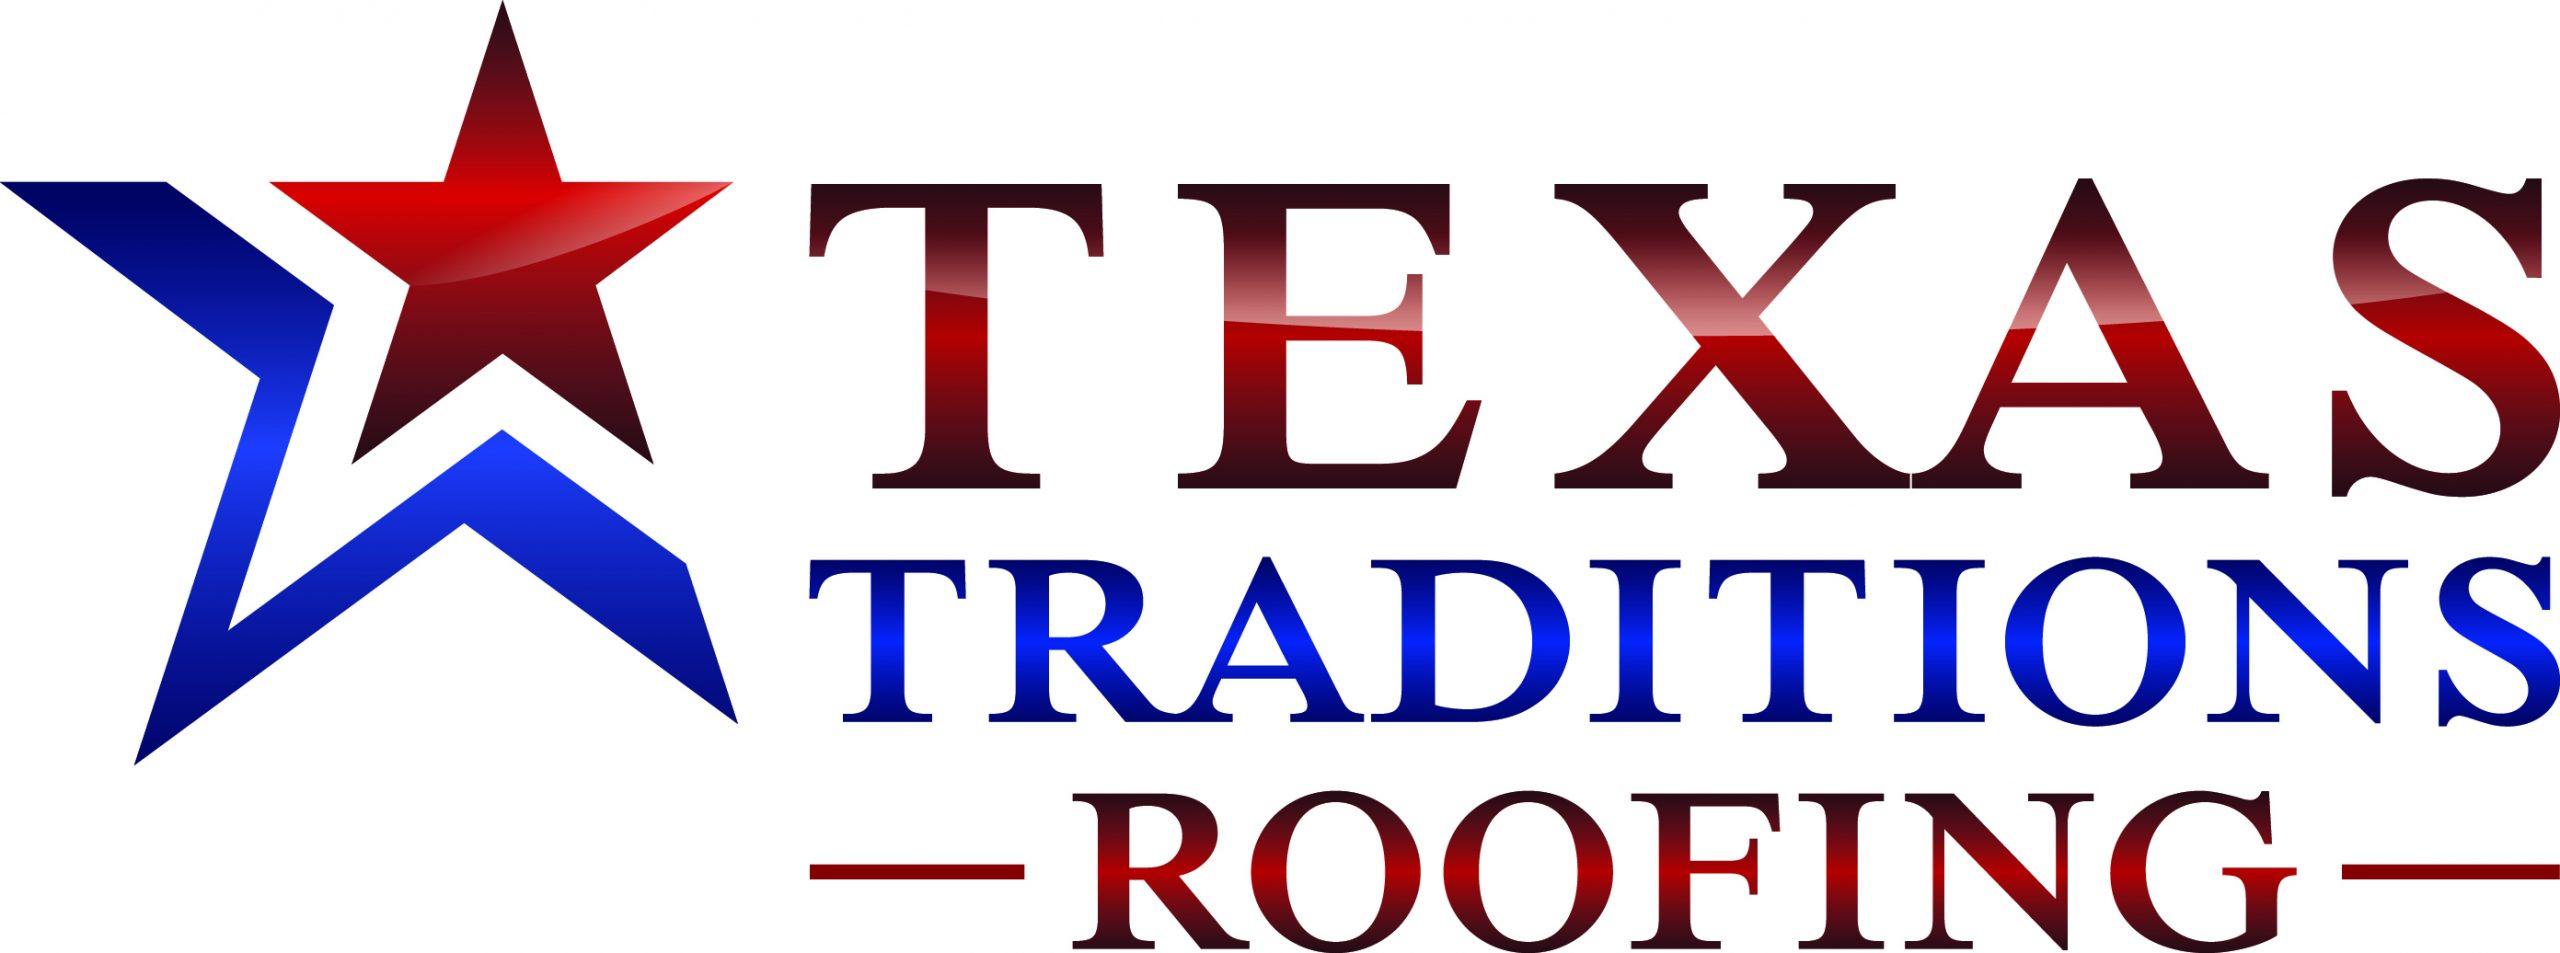 Texas Traditions Roofing Logo